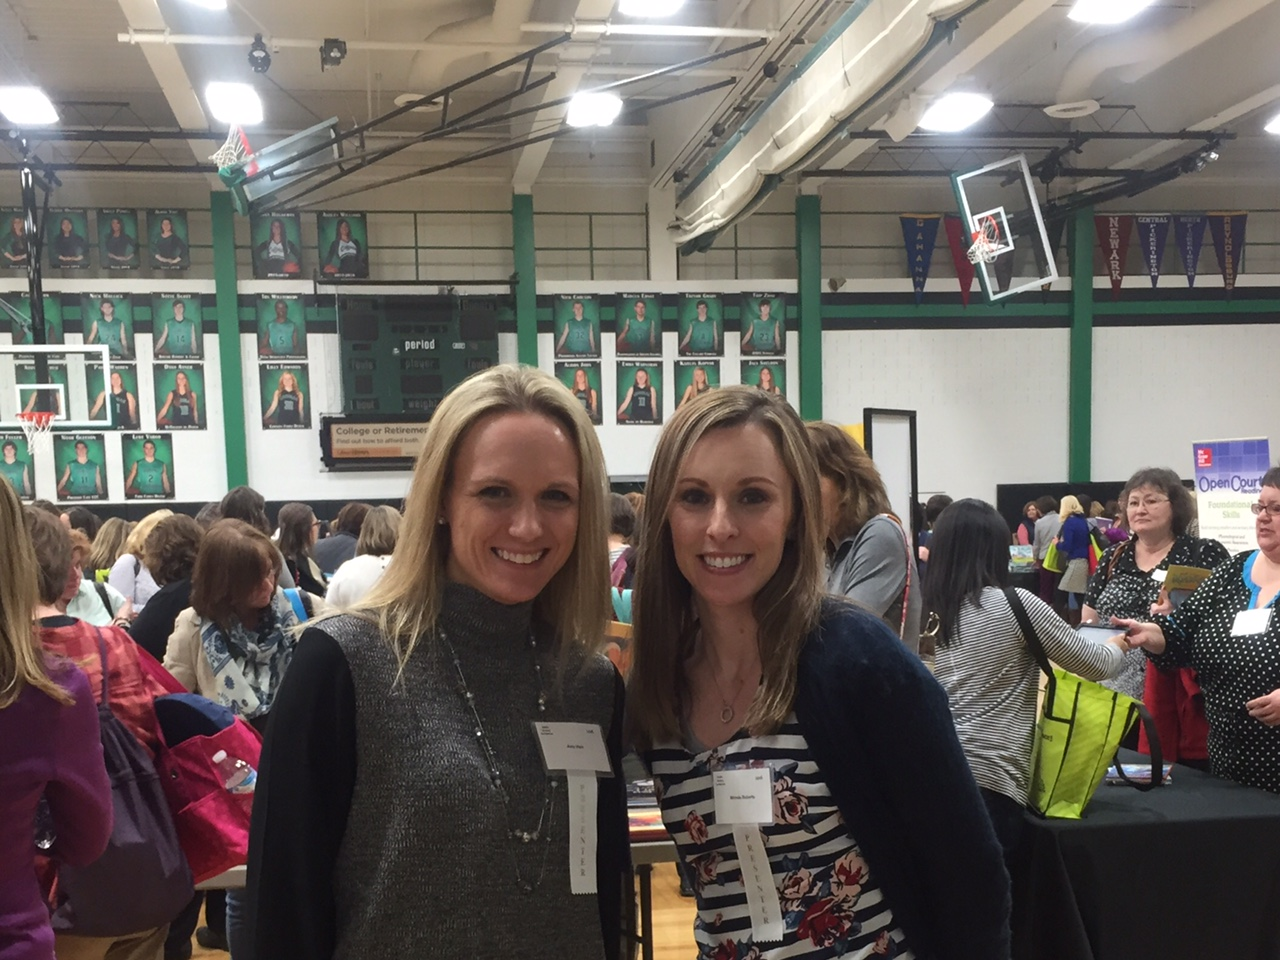 Helke Teachers Share Experiences at Conference